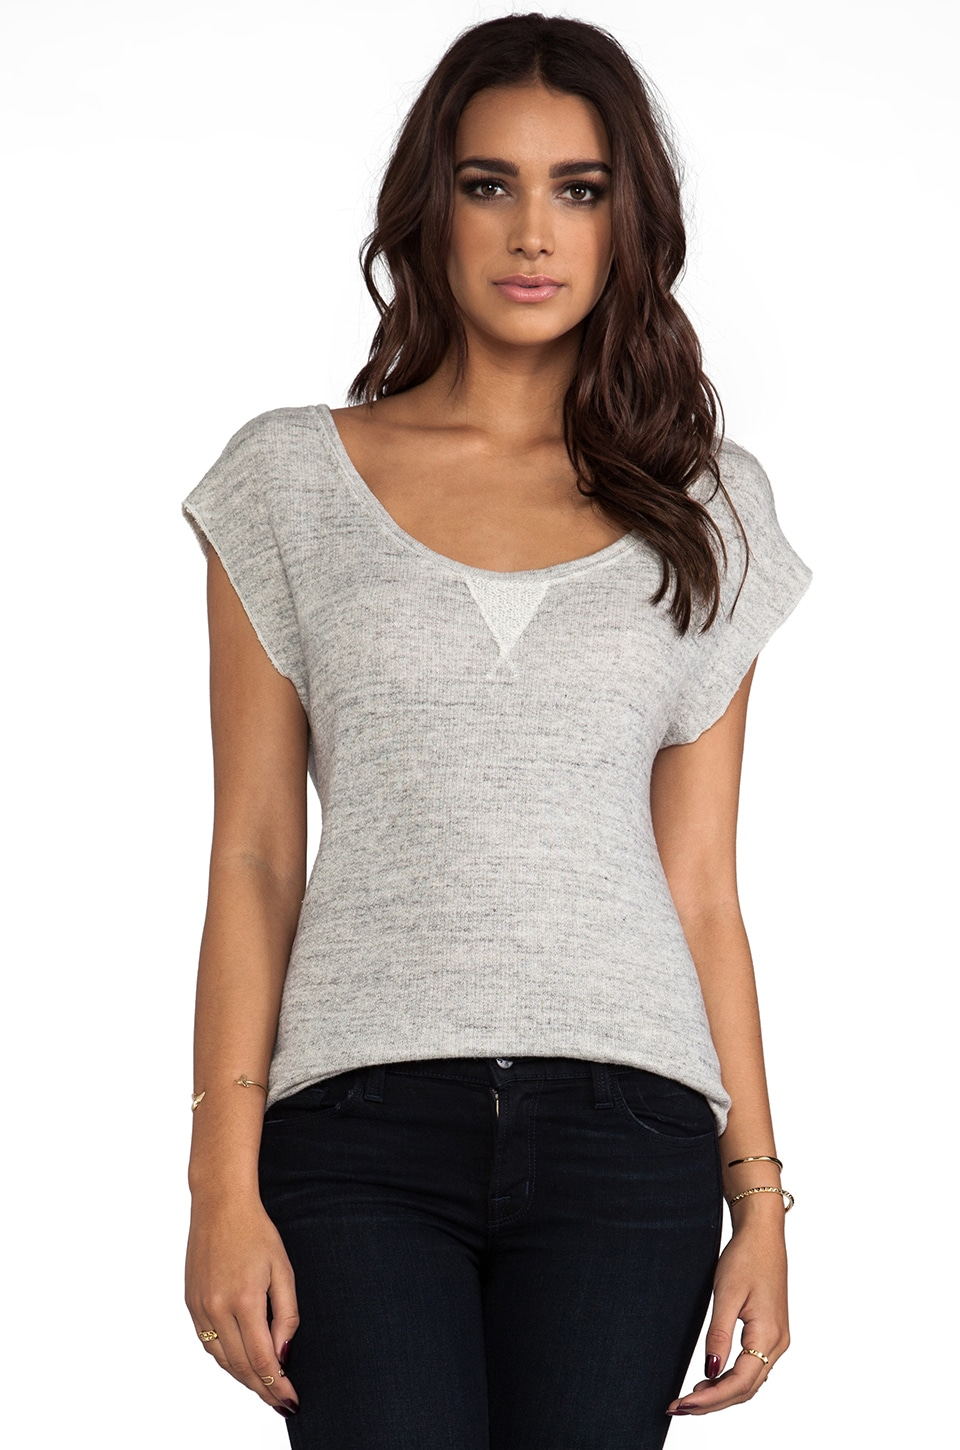 AG Adriano Goldschmied Terry Ballet Sweat Top in Heather Grey